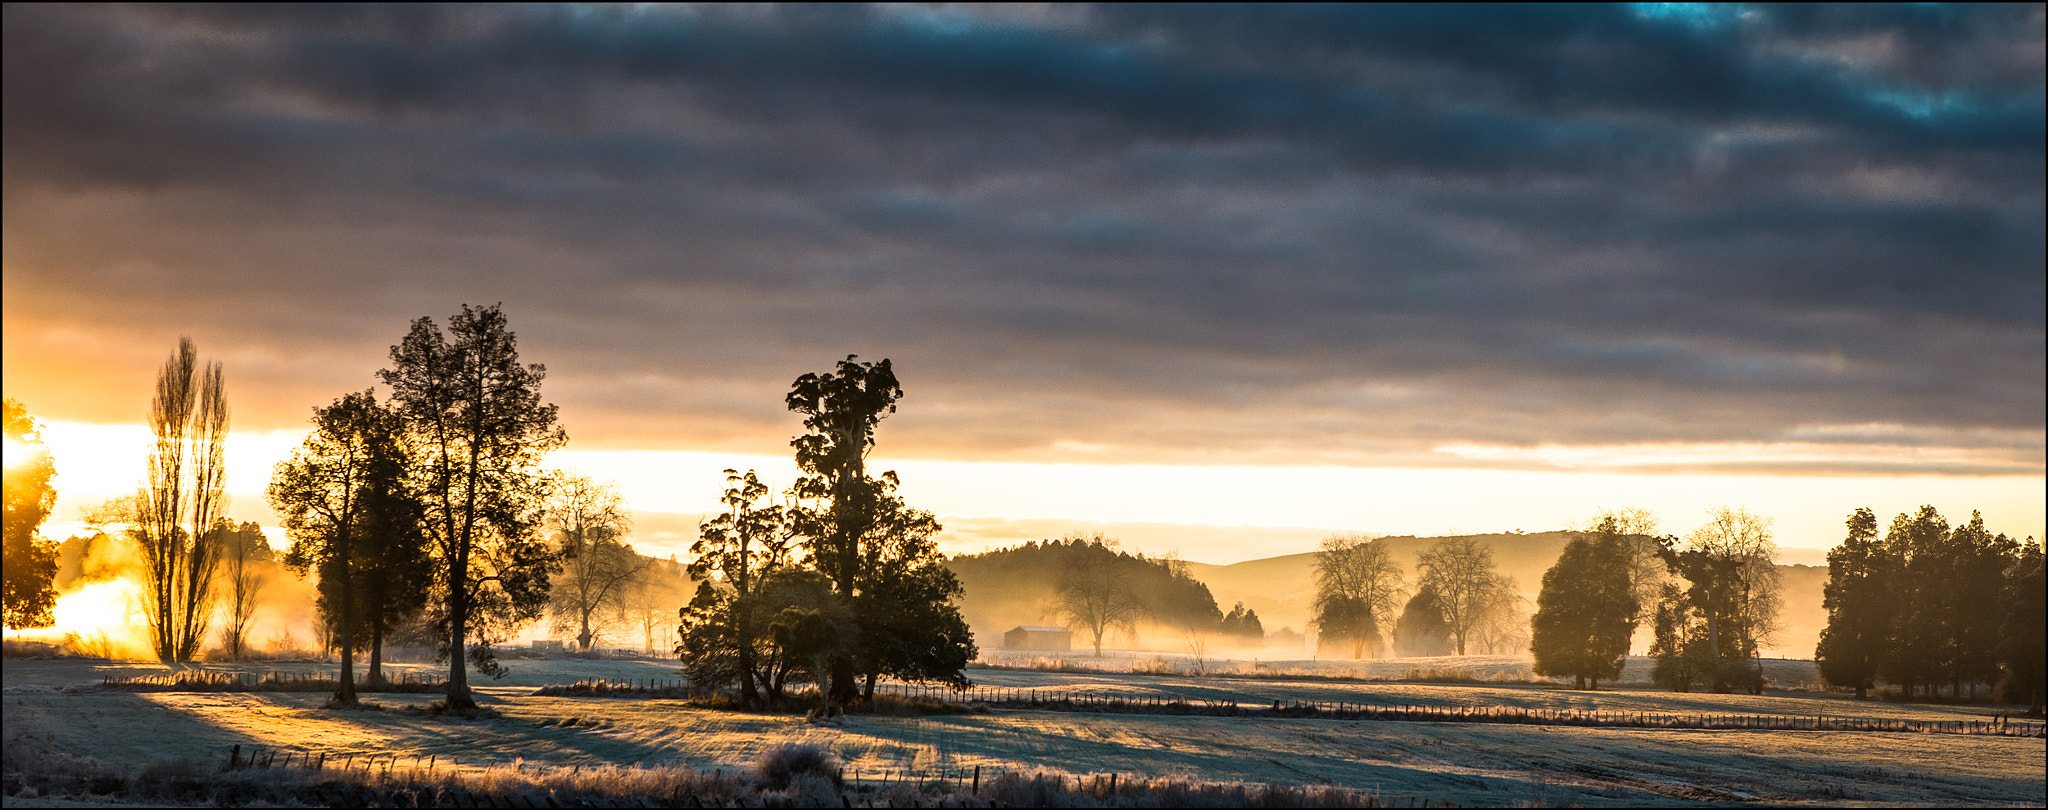 Photograph Morning Light by darren sharp on 500px